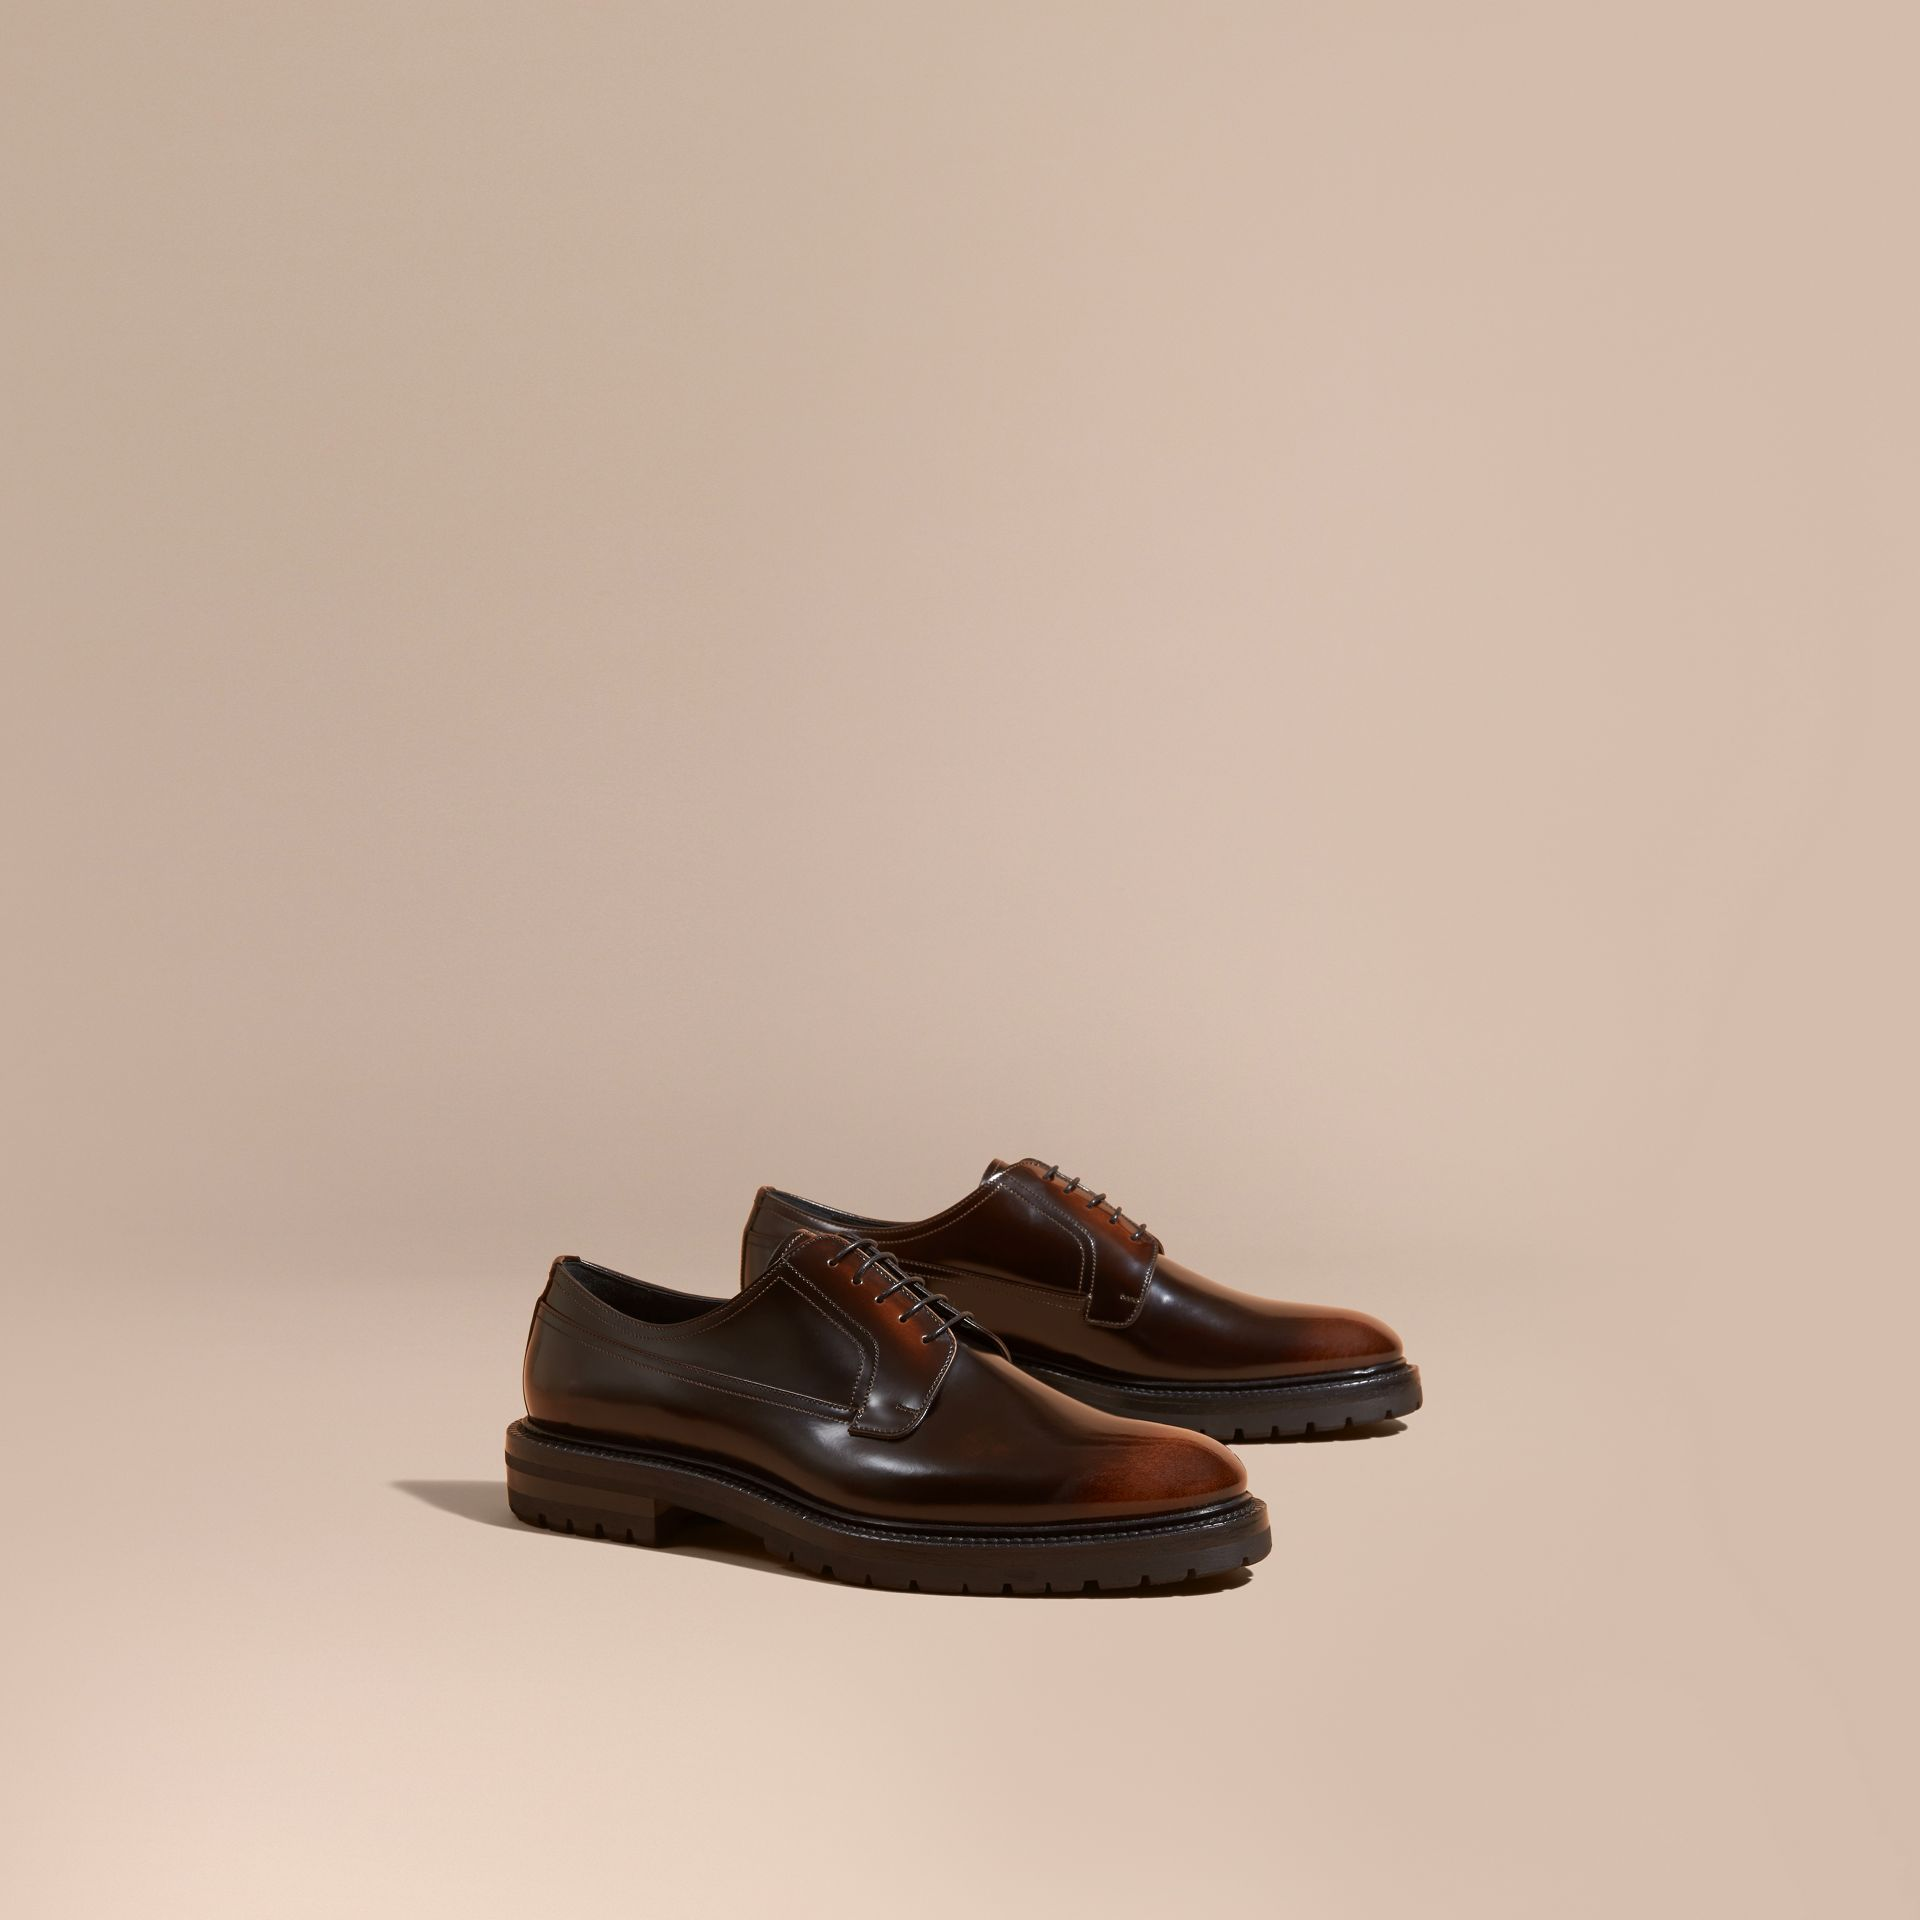 Chaussures de style derby en cuir bruni (Chocolat Amer) - Homme | Burberry - photo de la galerie 1